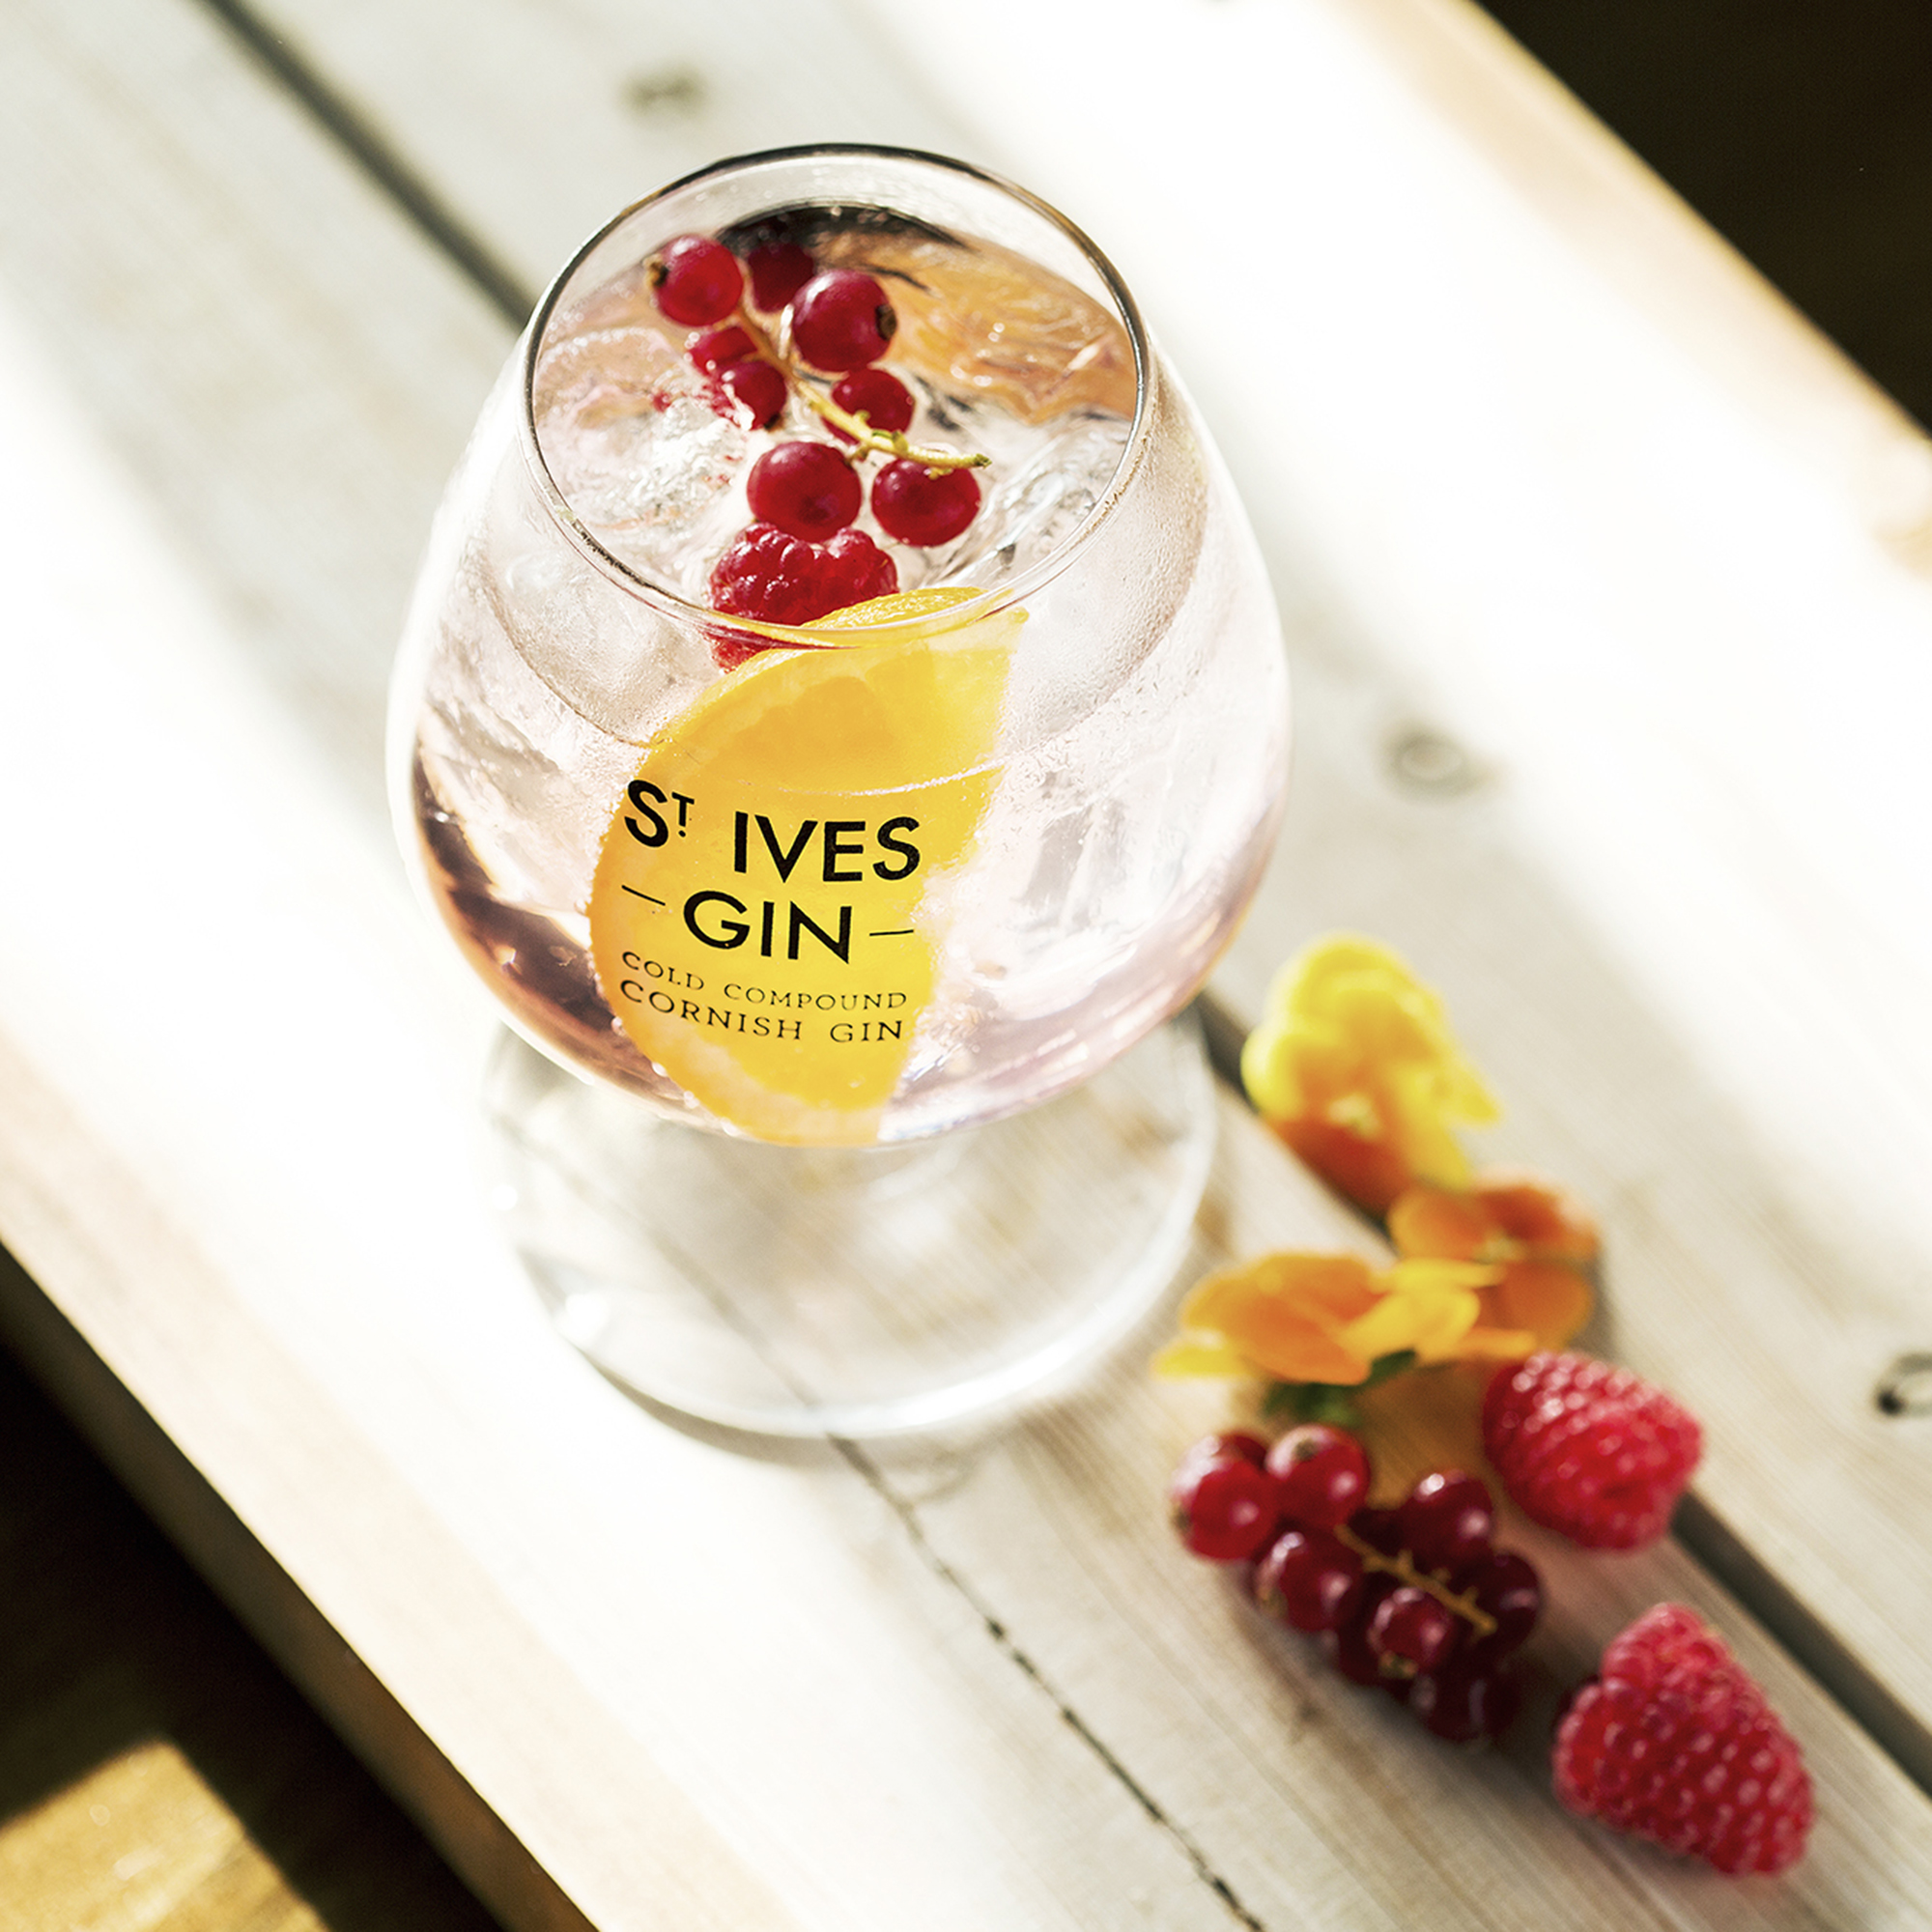 St Ives Super Berry Gin Signature Gin & Tonic Serve